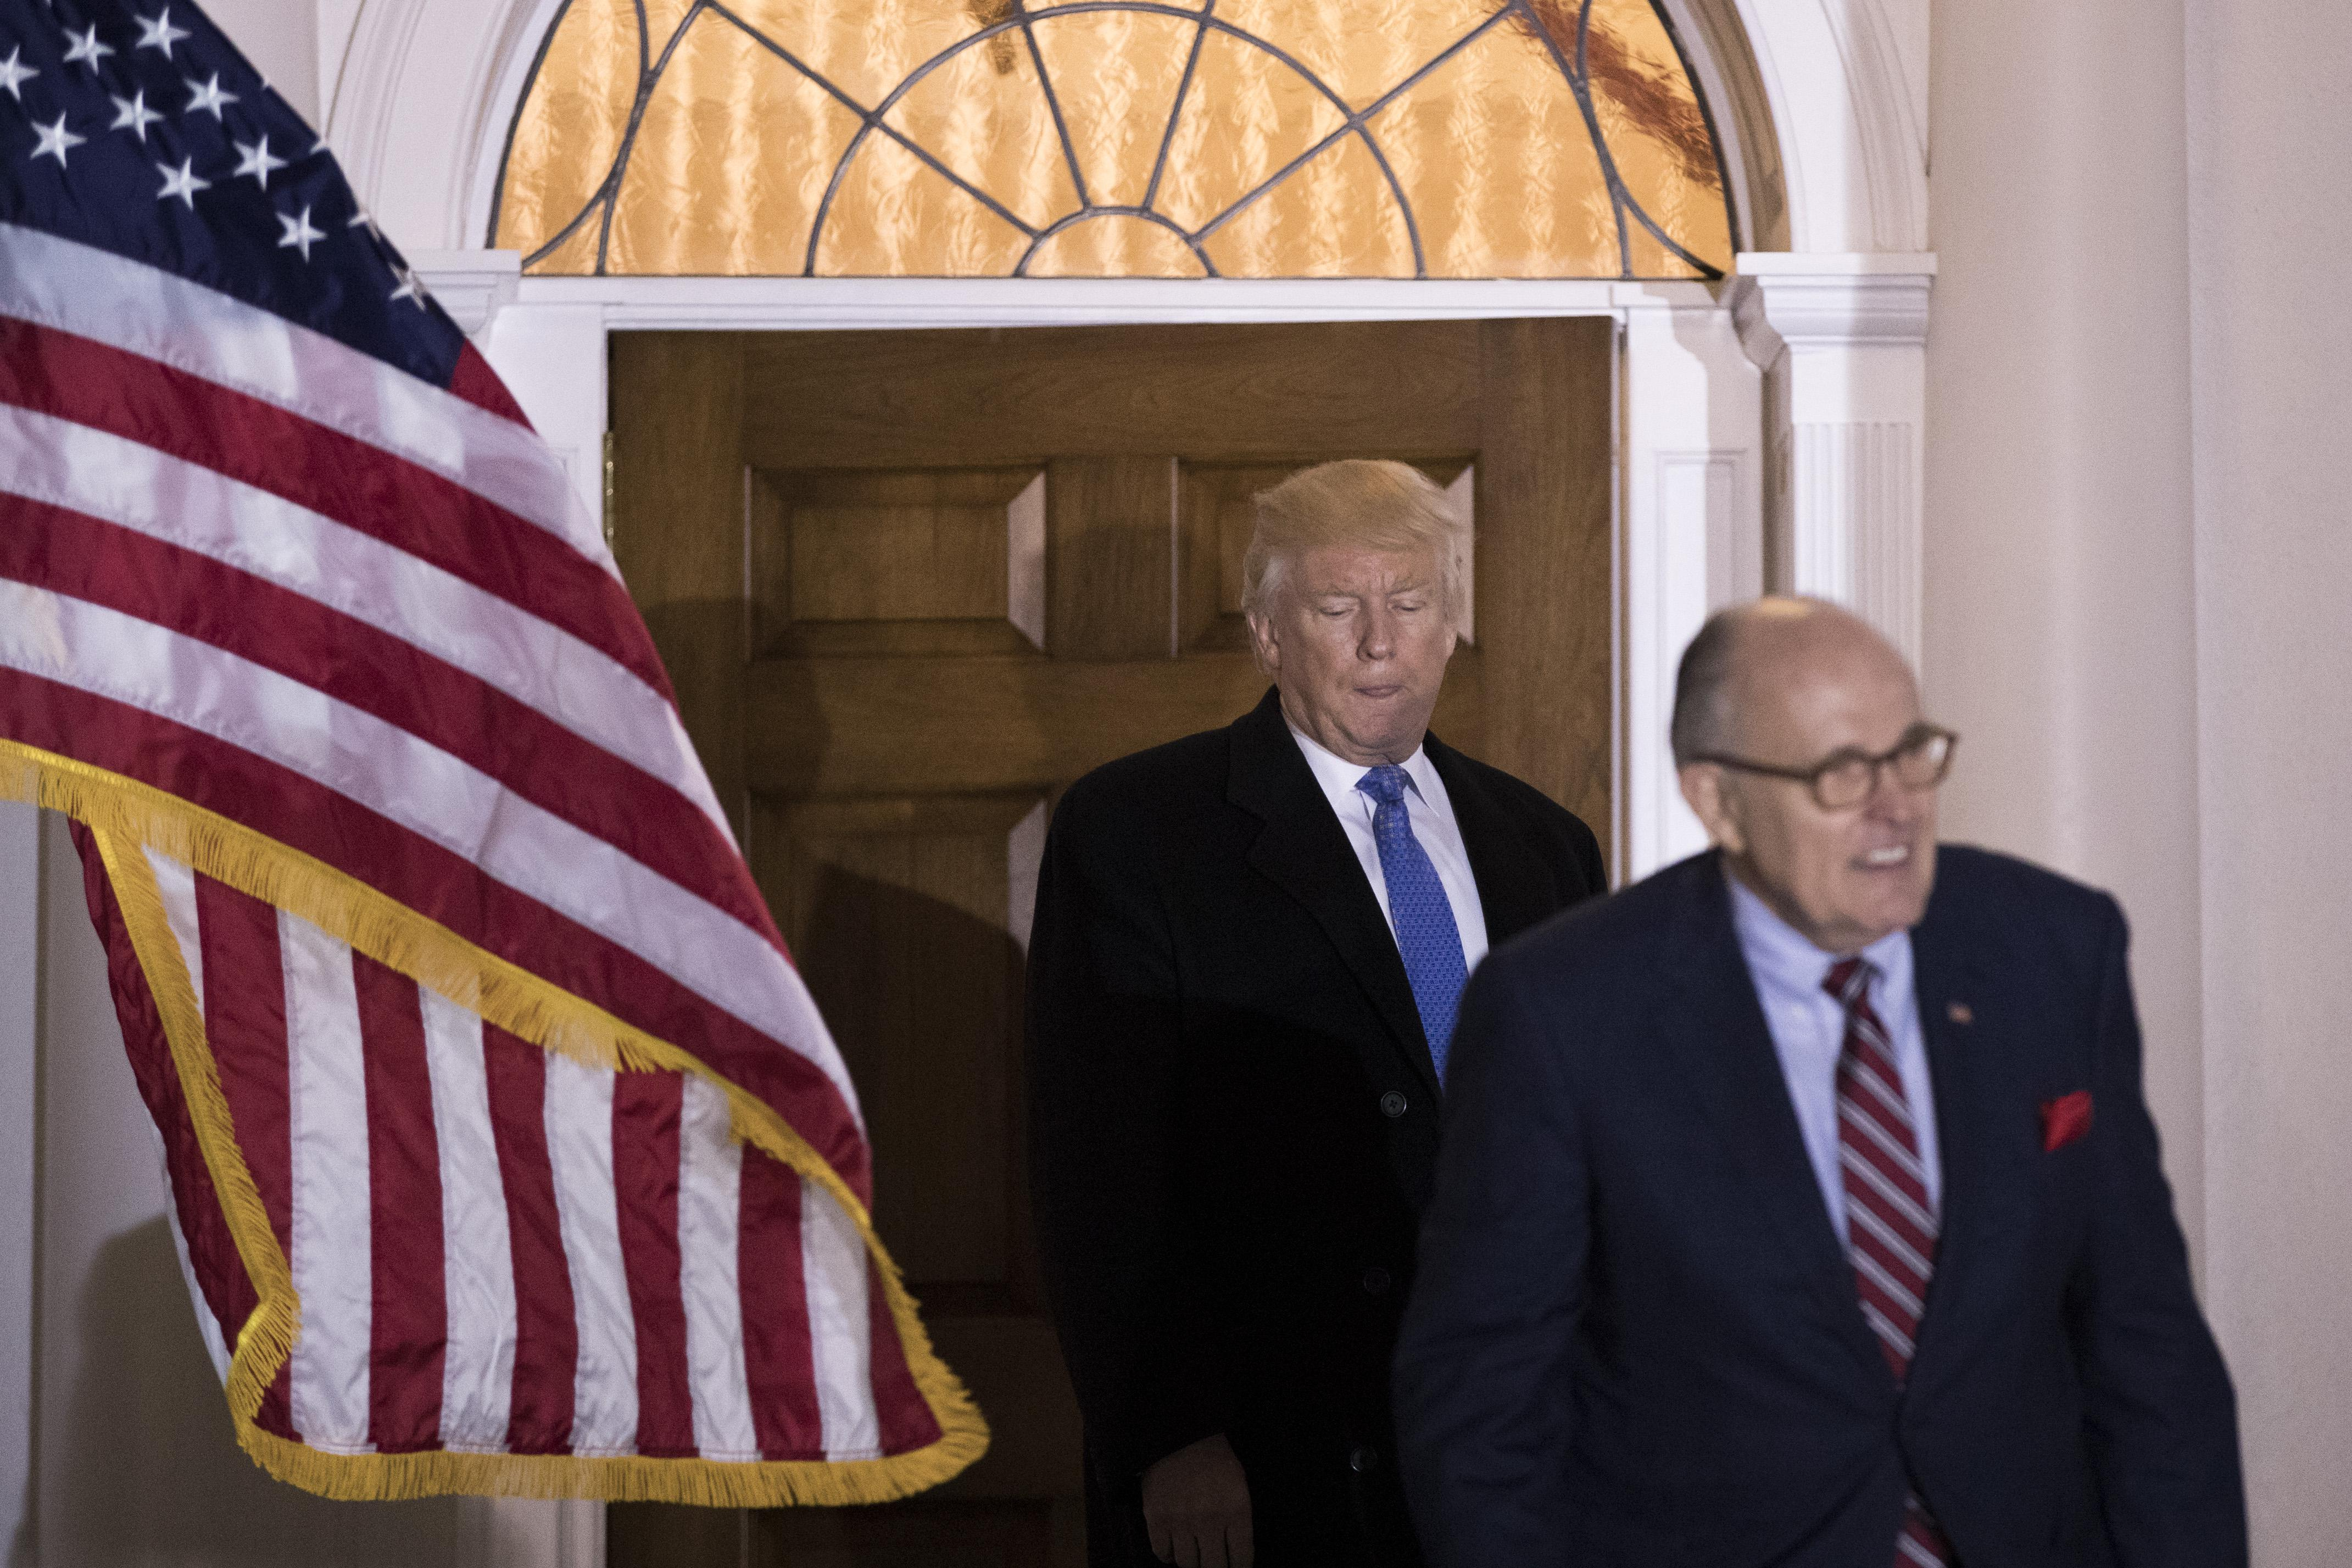 Donald Trump walking behind Rudy Giuliani.